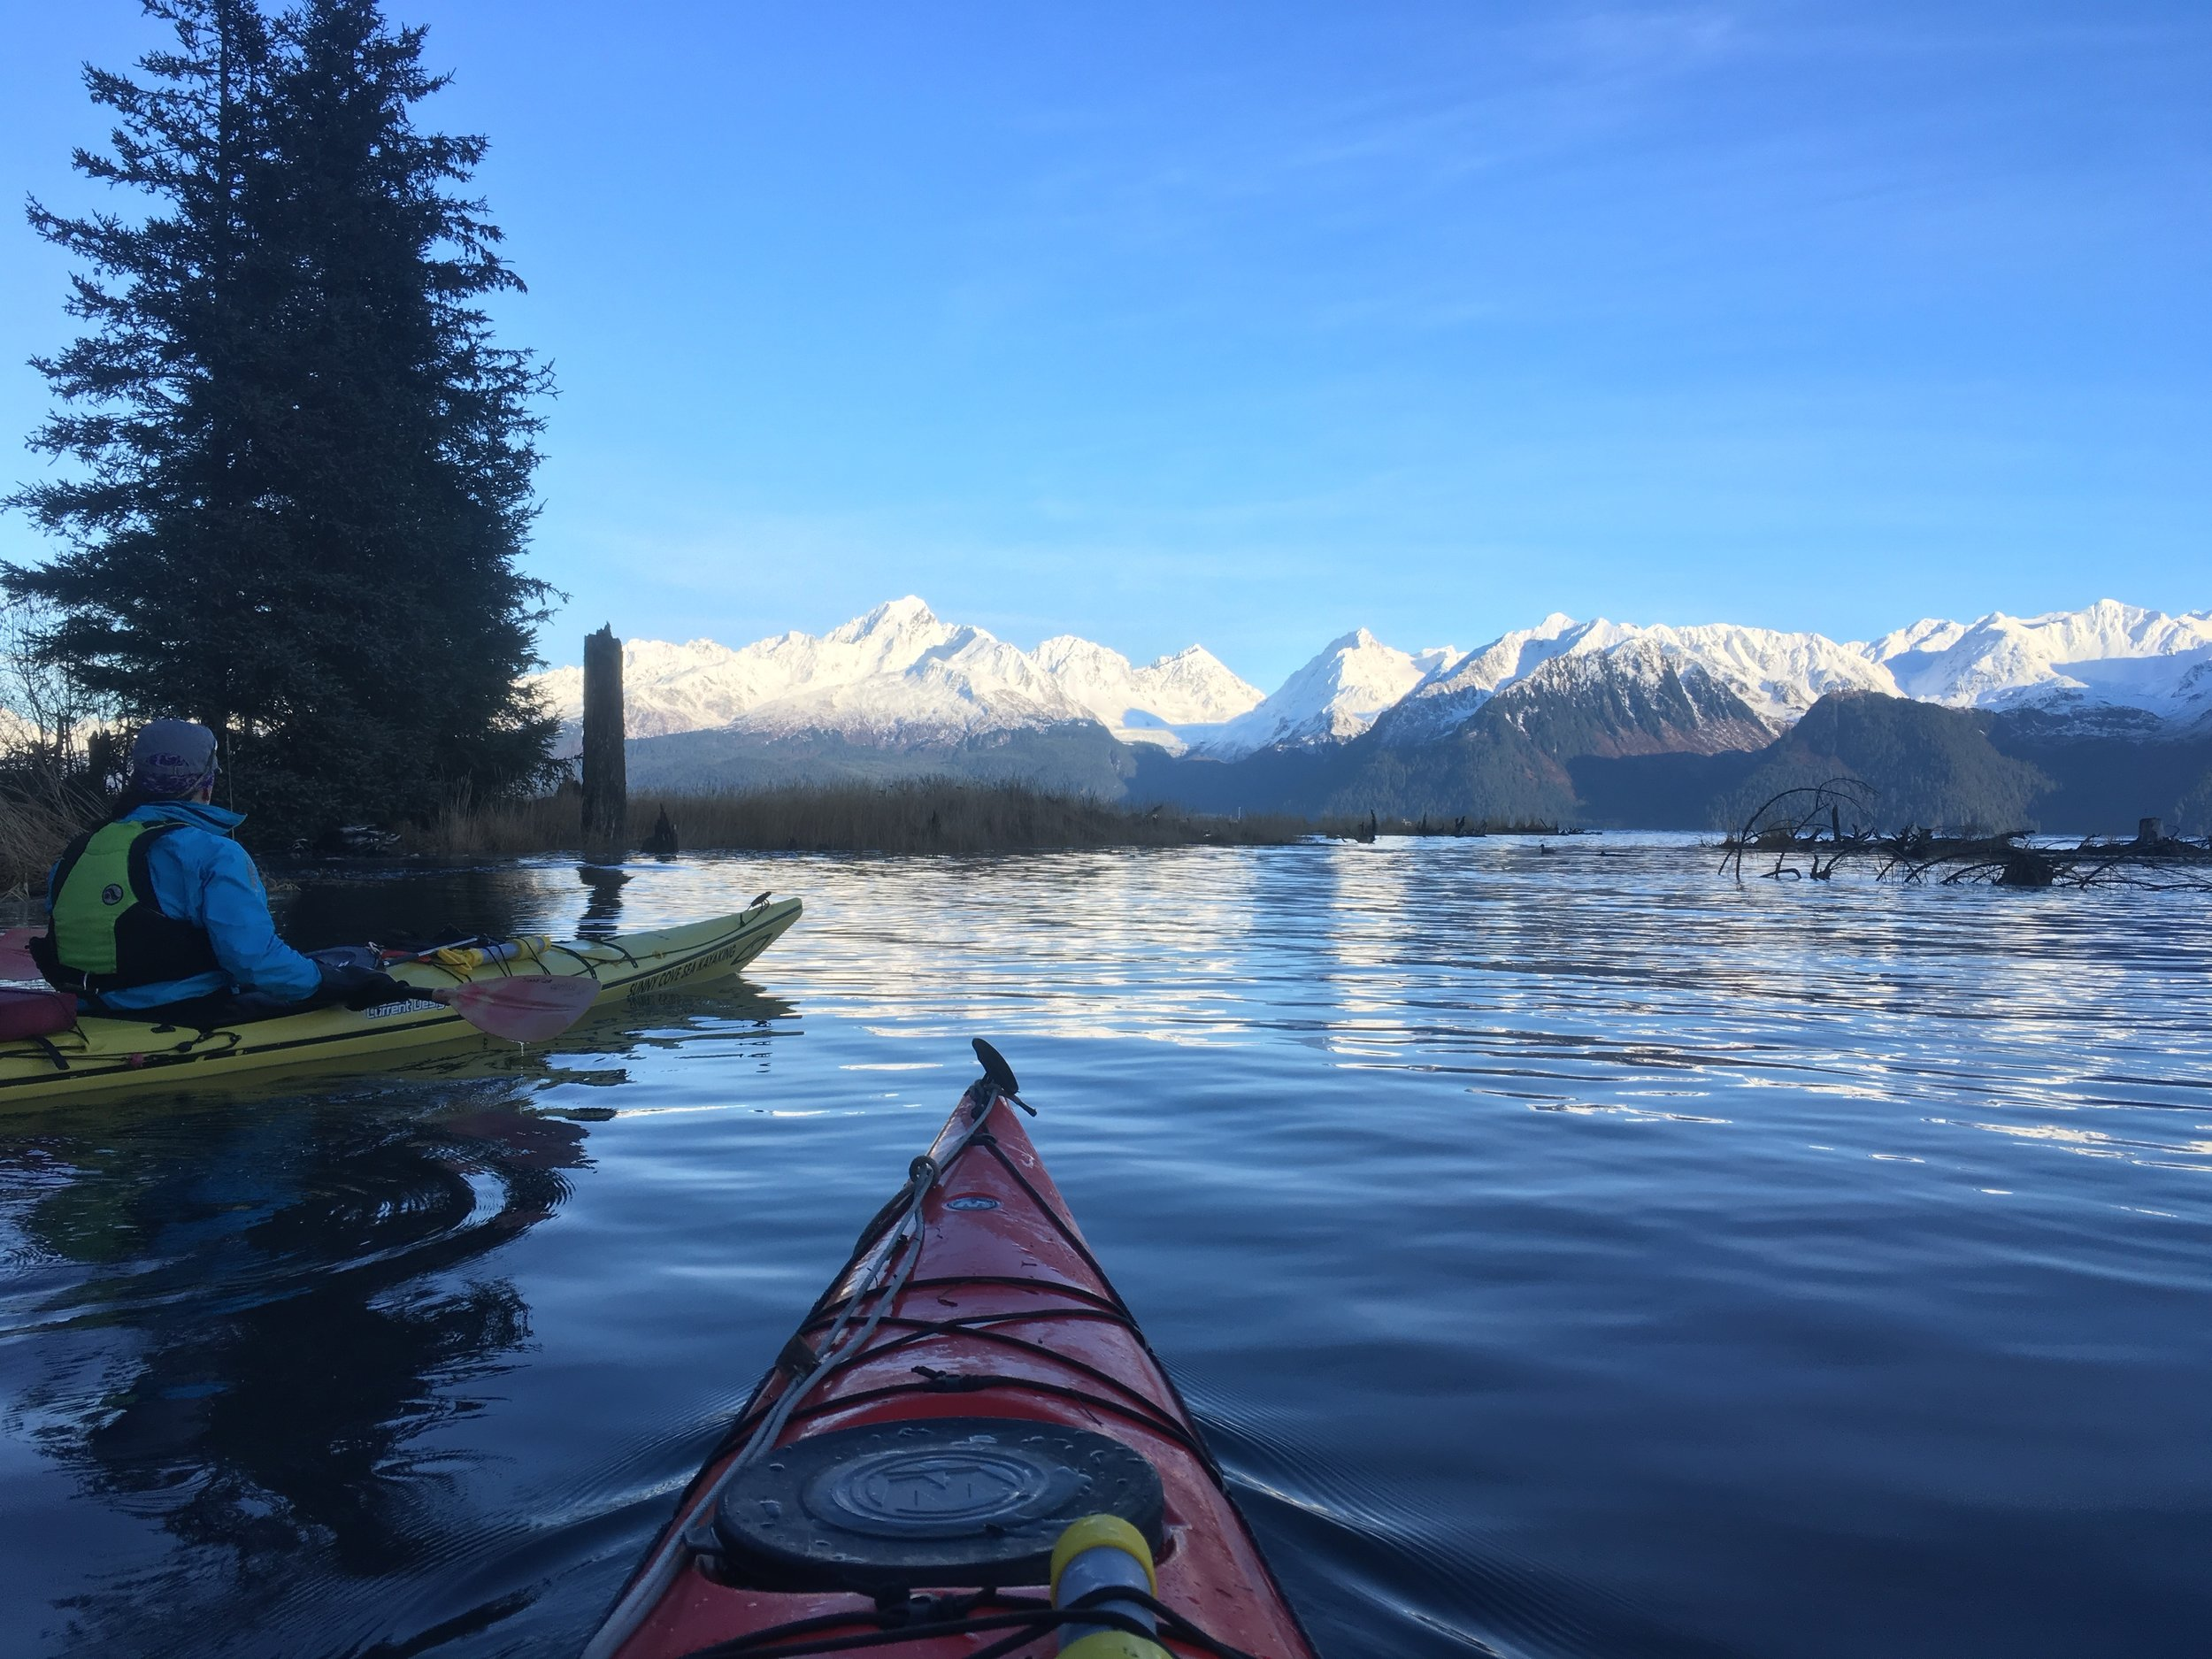 Kayaking over an area usually accessible by foot.